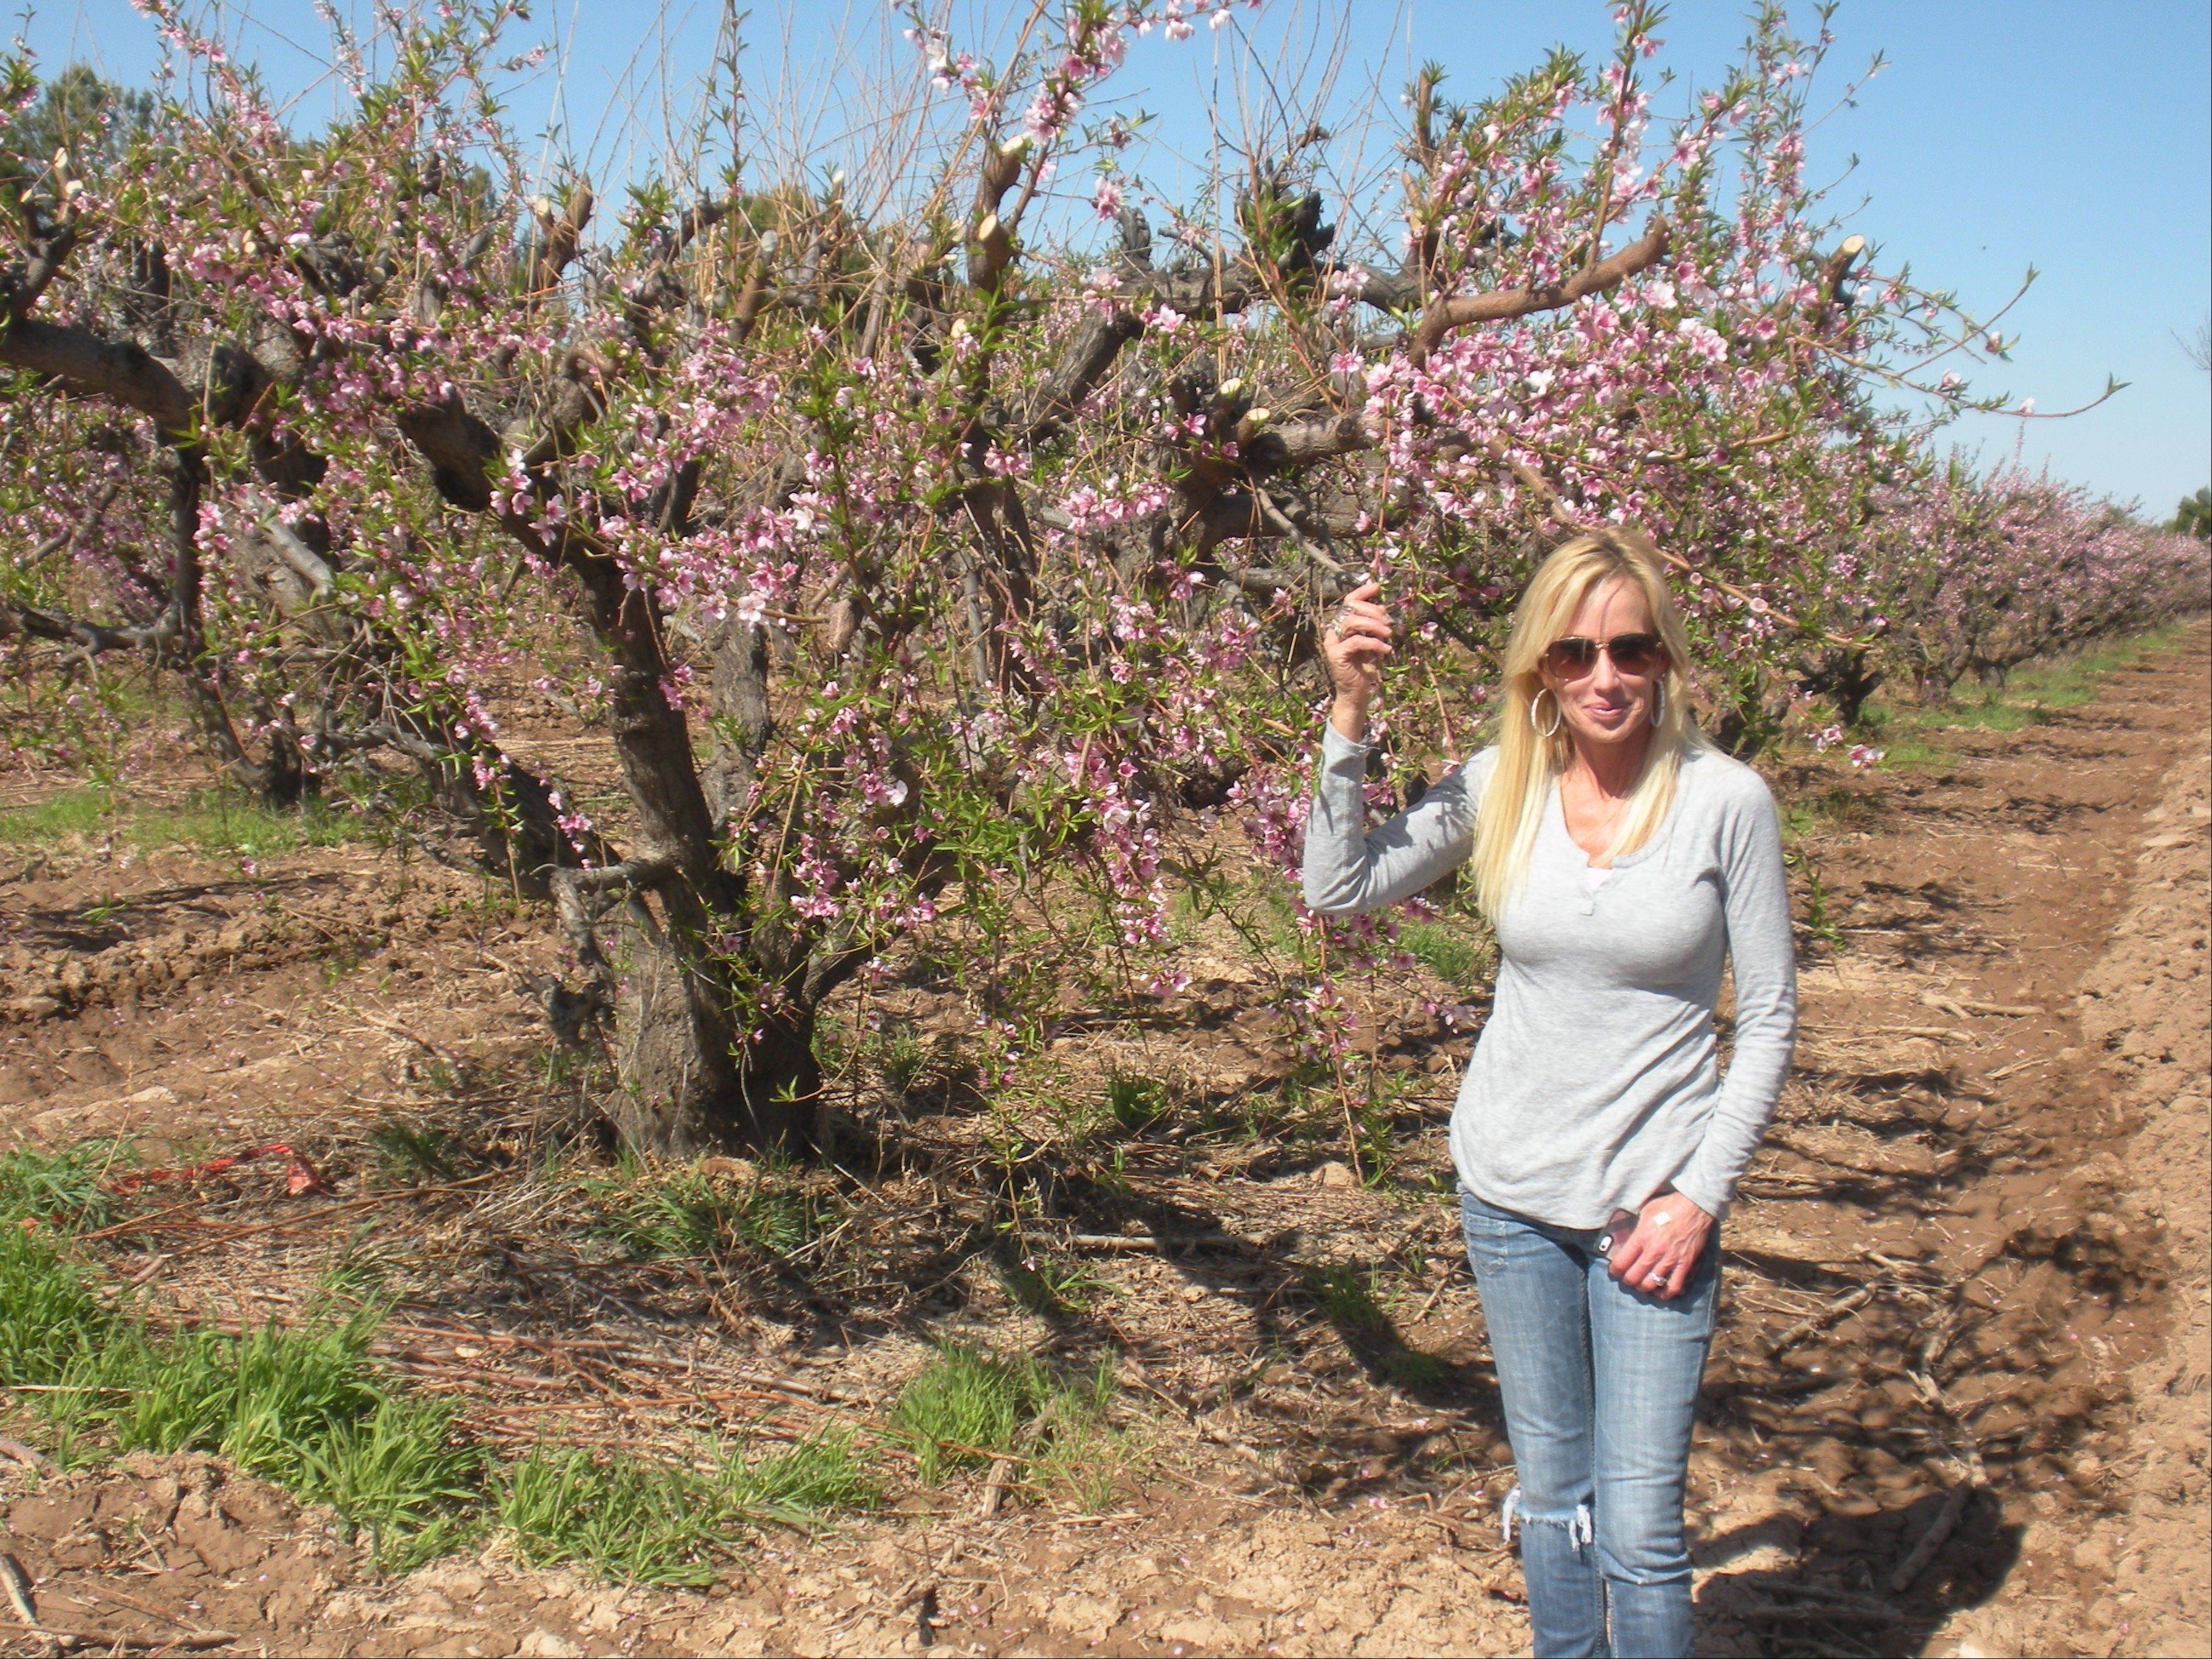 Carrie Schnepf opens her family's farm to the public during peach blossom time.